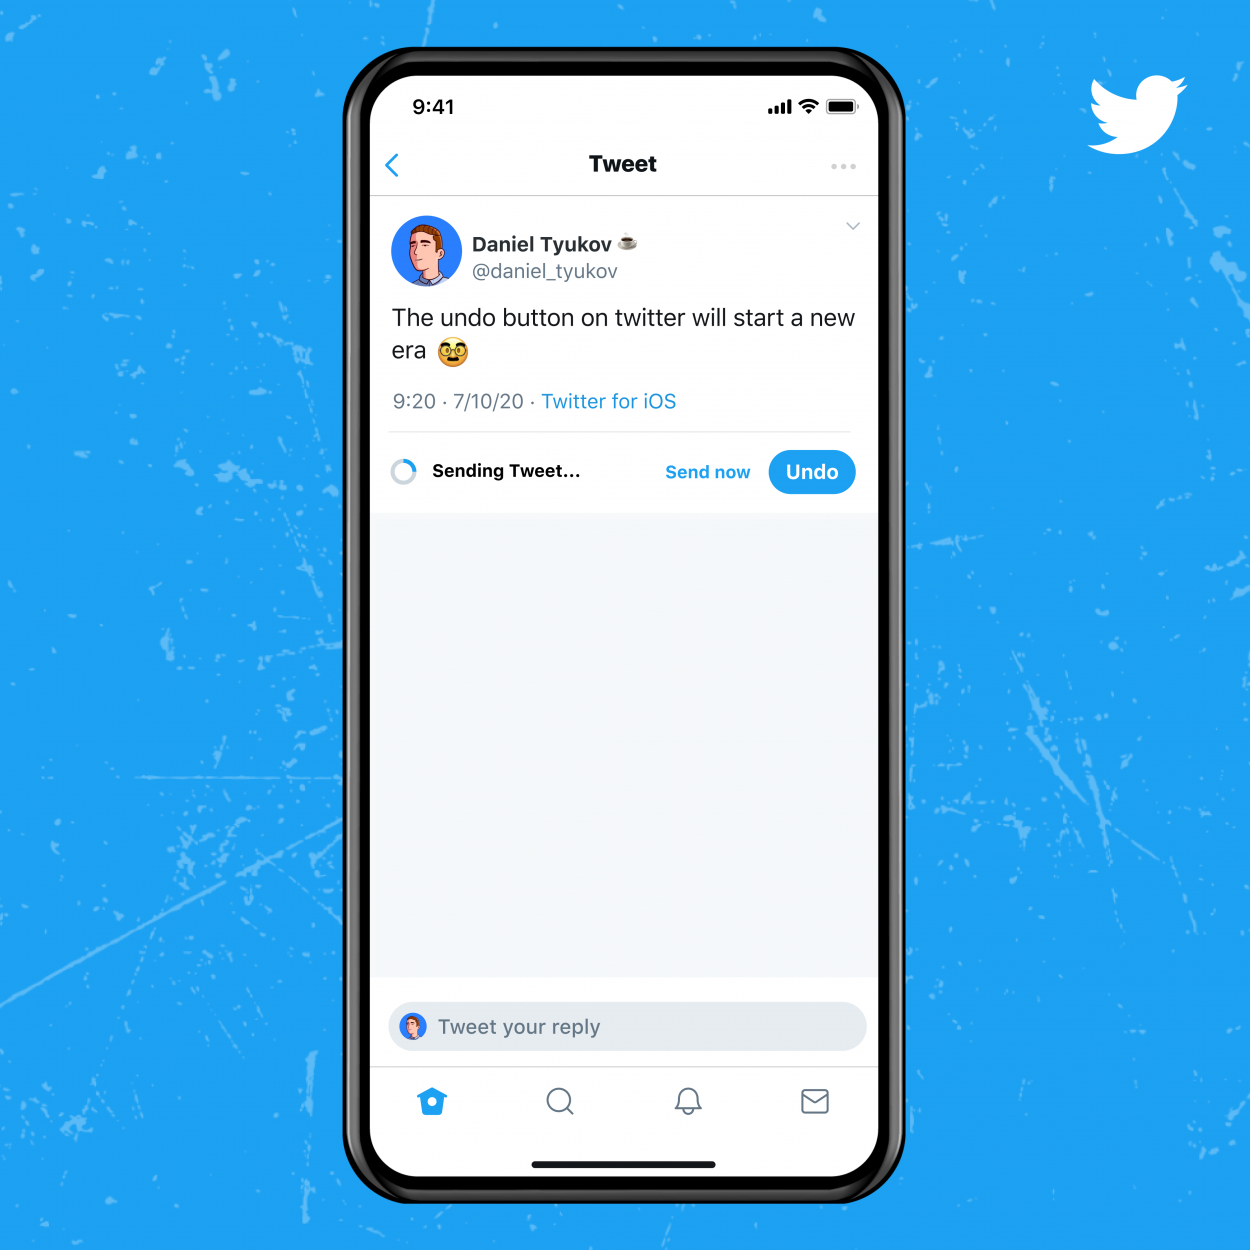 An animation will tell the user how much time is left to cancel their tweet